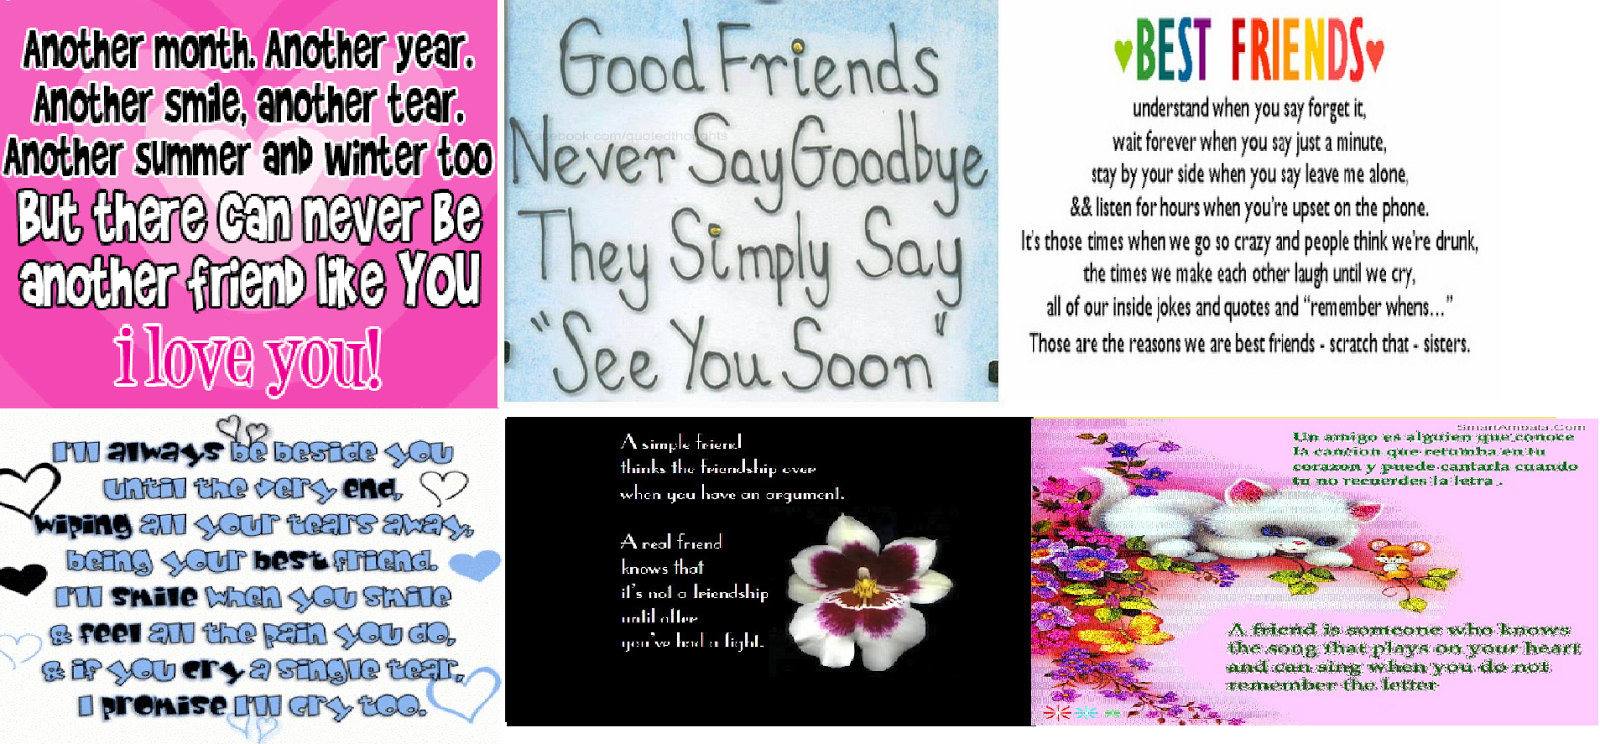 Pictures Of Best Friends Forever Poems For Girls In Hindi